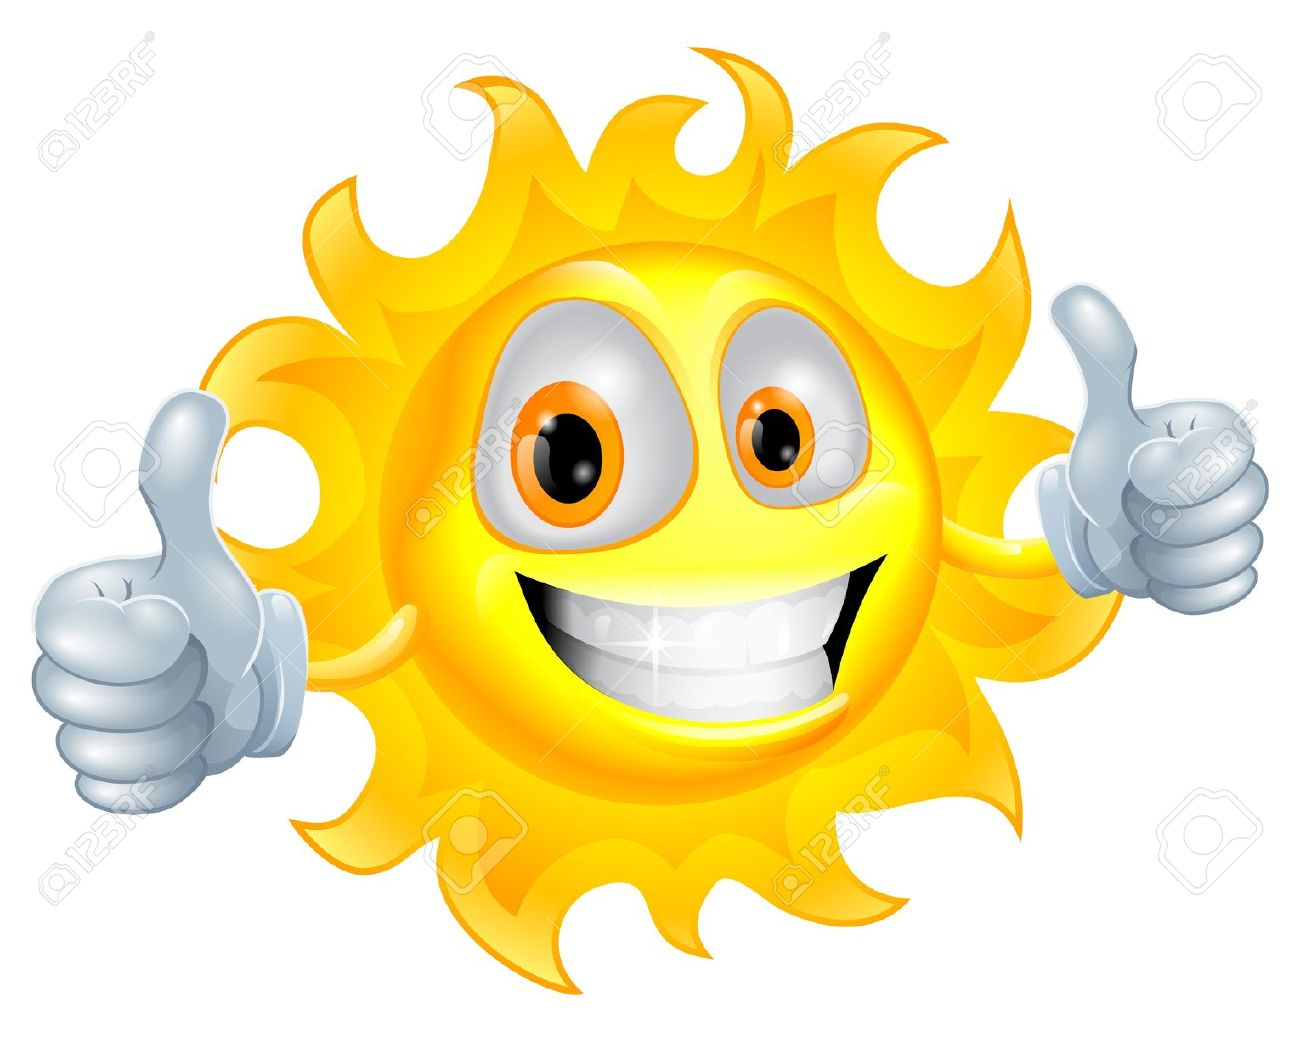 Double thumbs up clipart clip royalty free stock A Sun Cartoon Mascot Giving A Double Thumbs Up Royalty Free ... clip royalty free stock